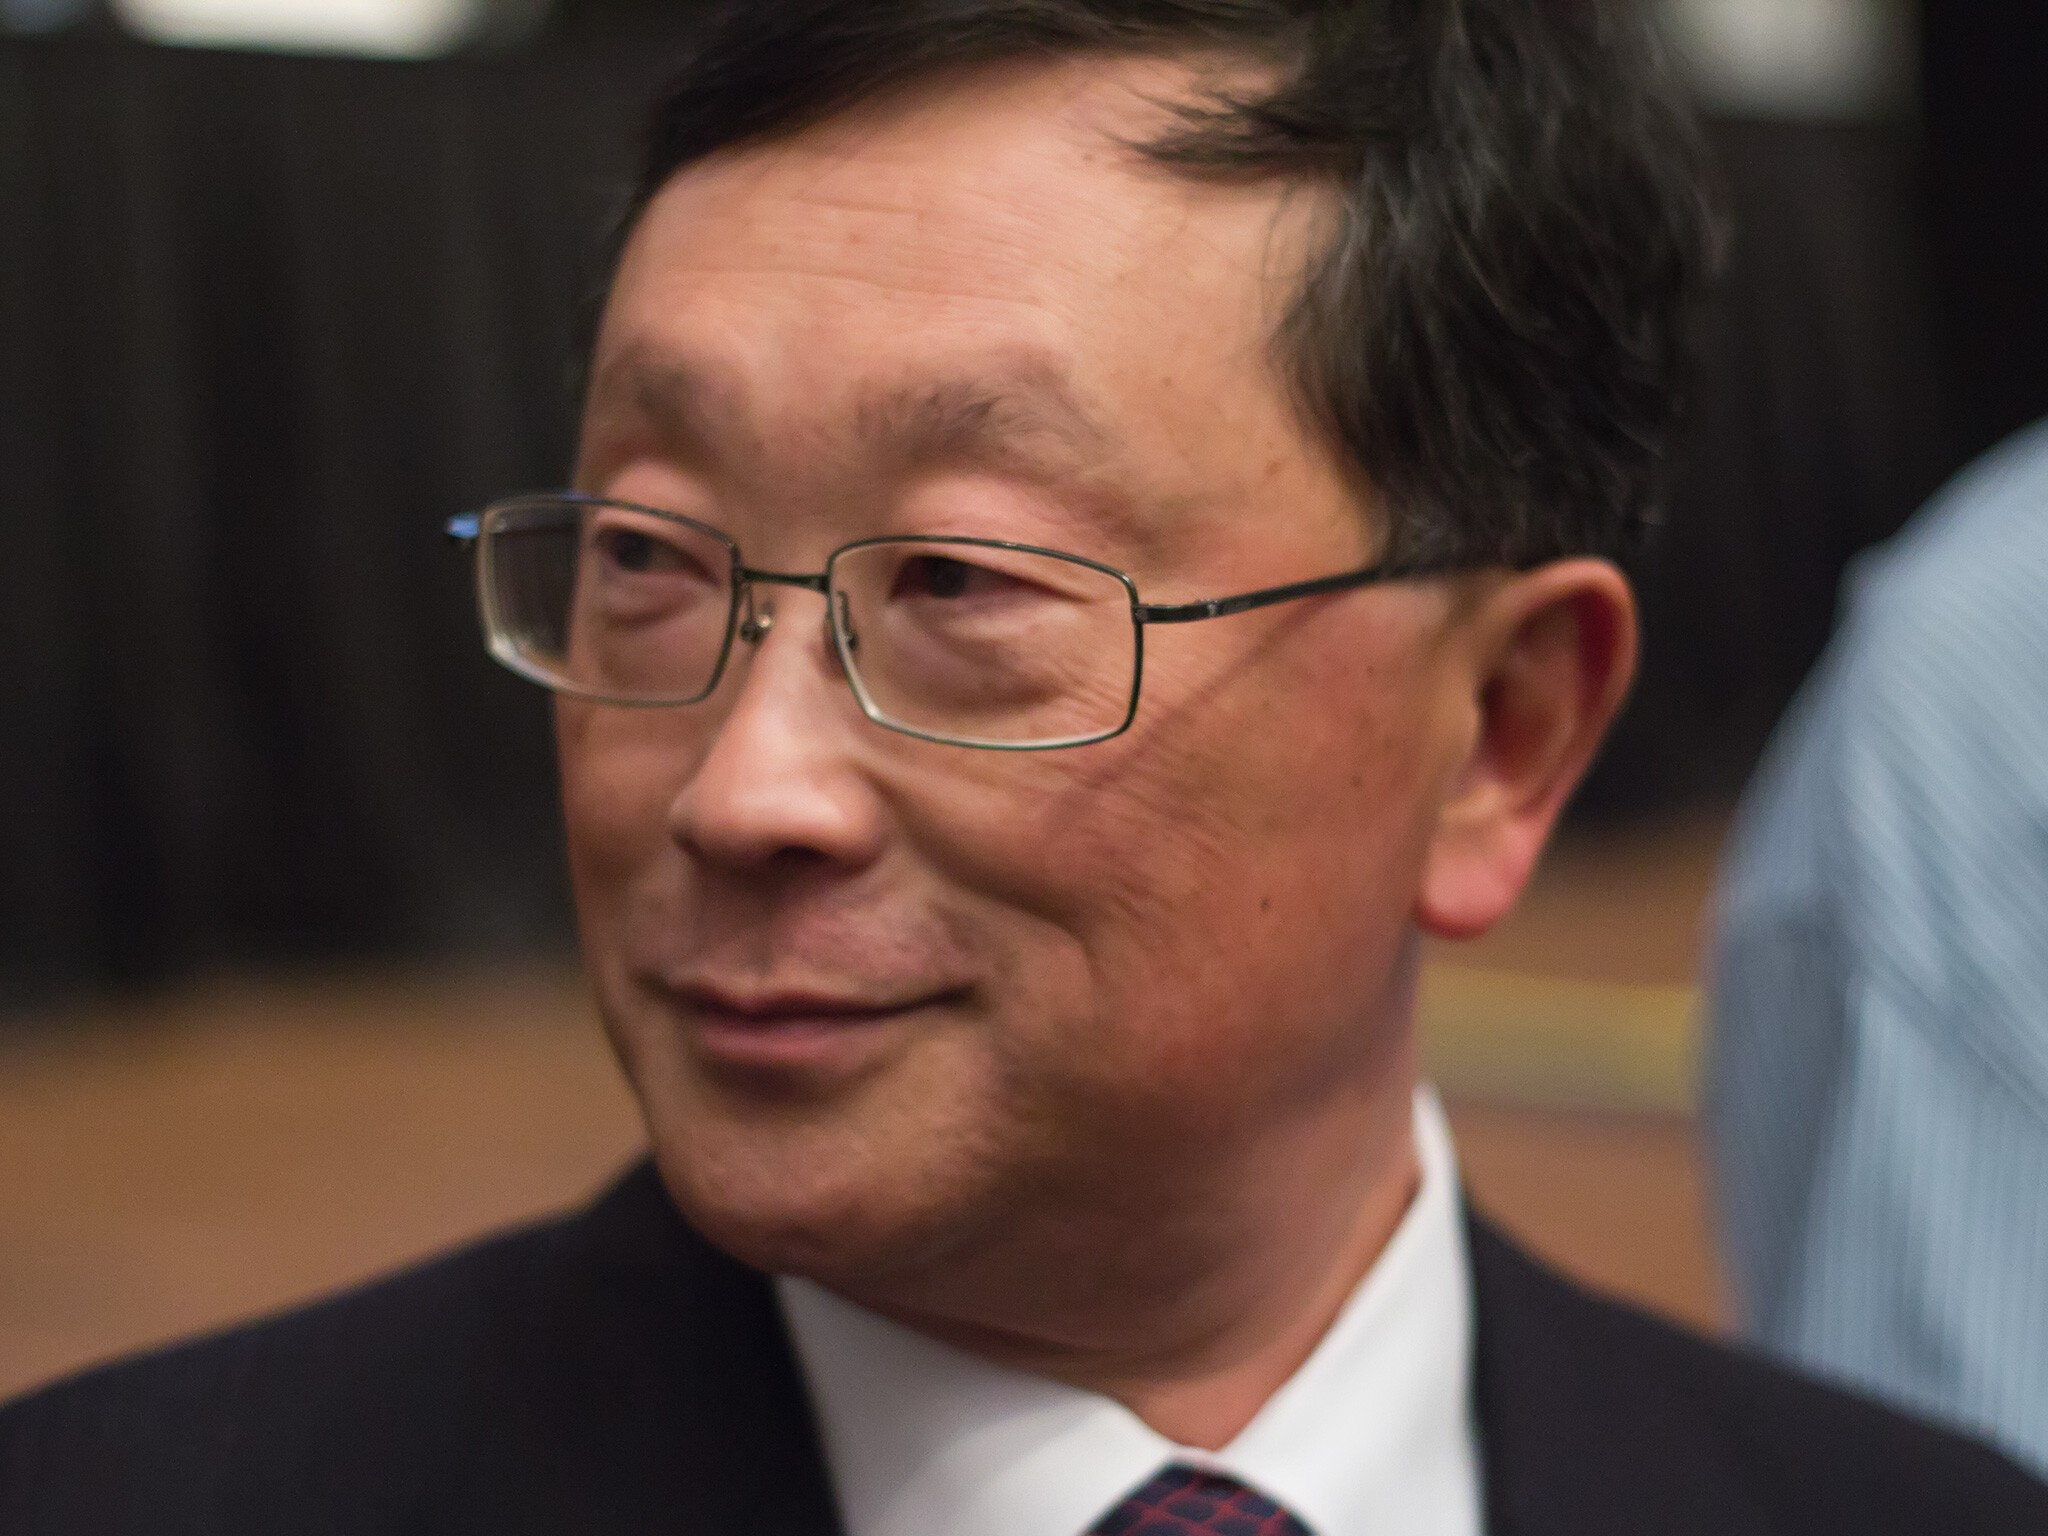 BlackBerry CEO John Chen is now on Twitter